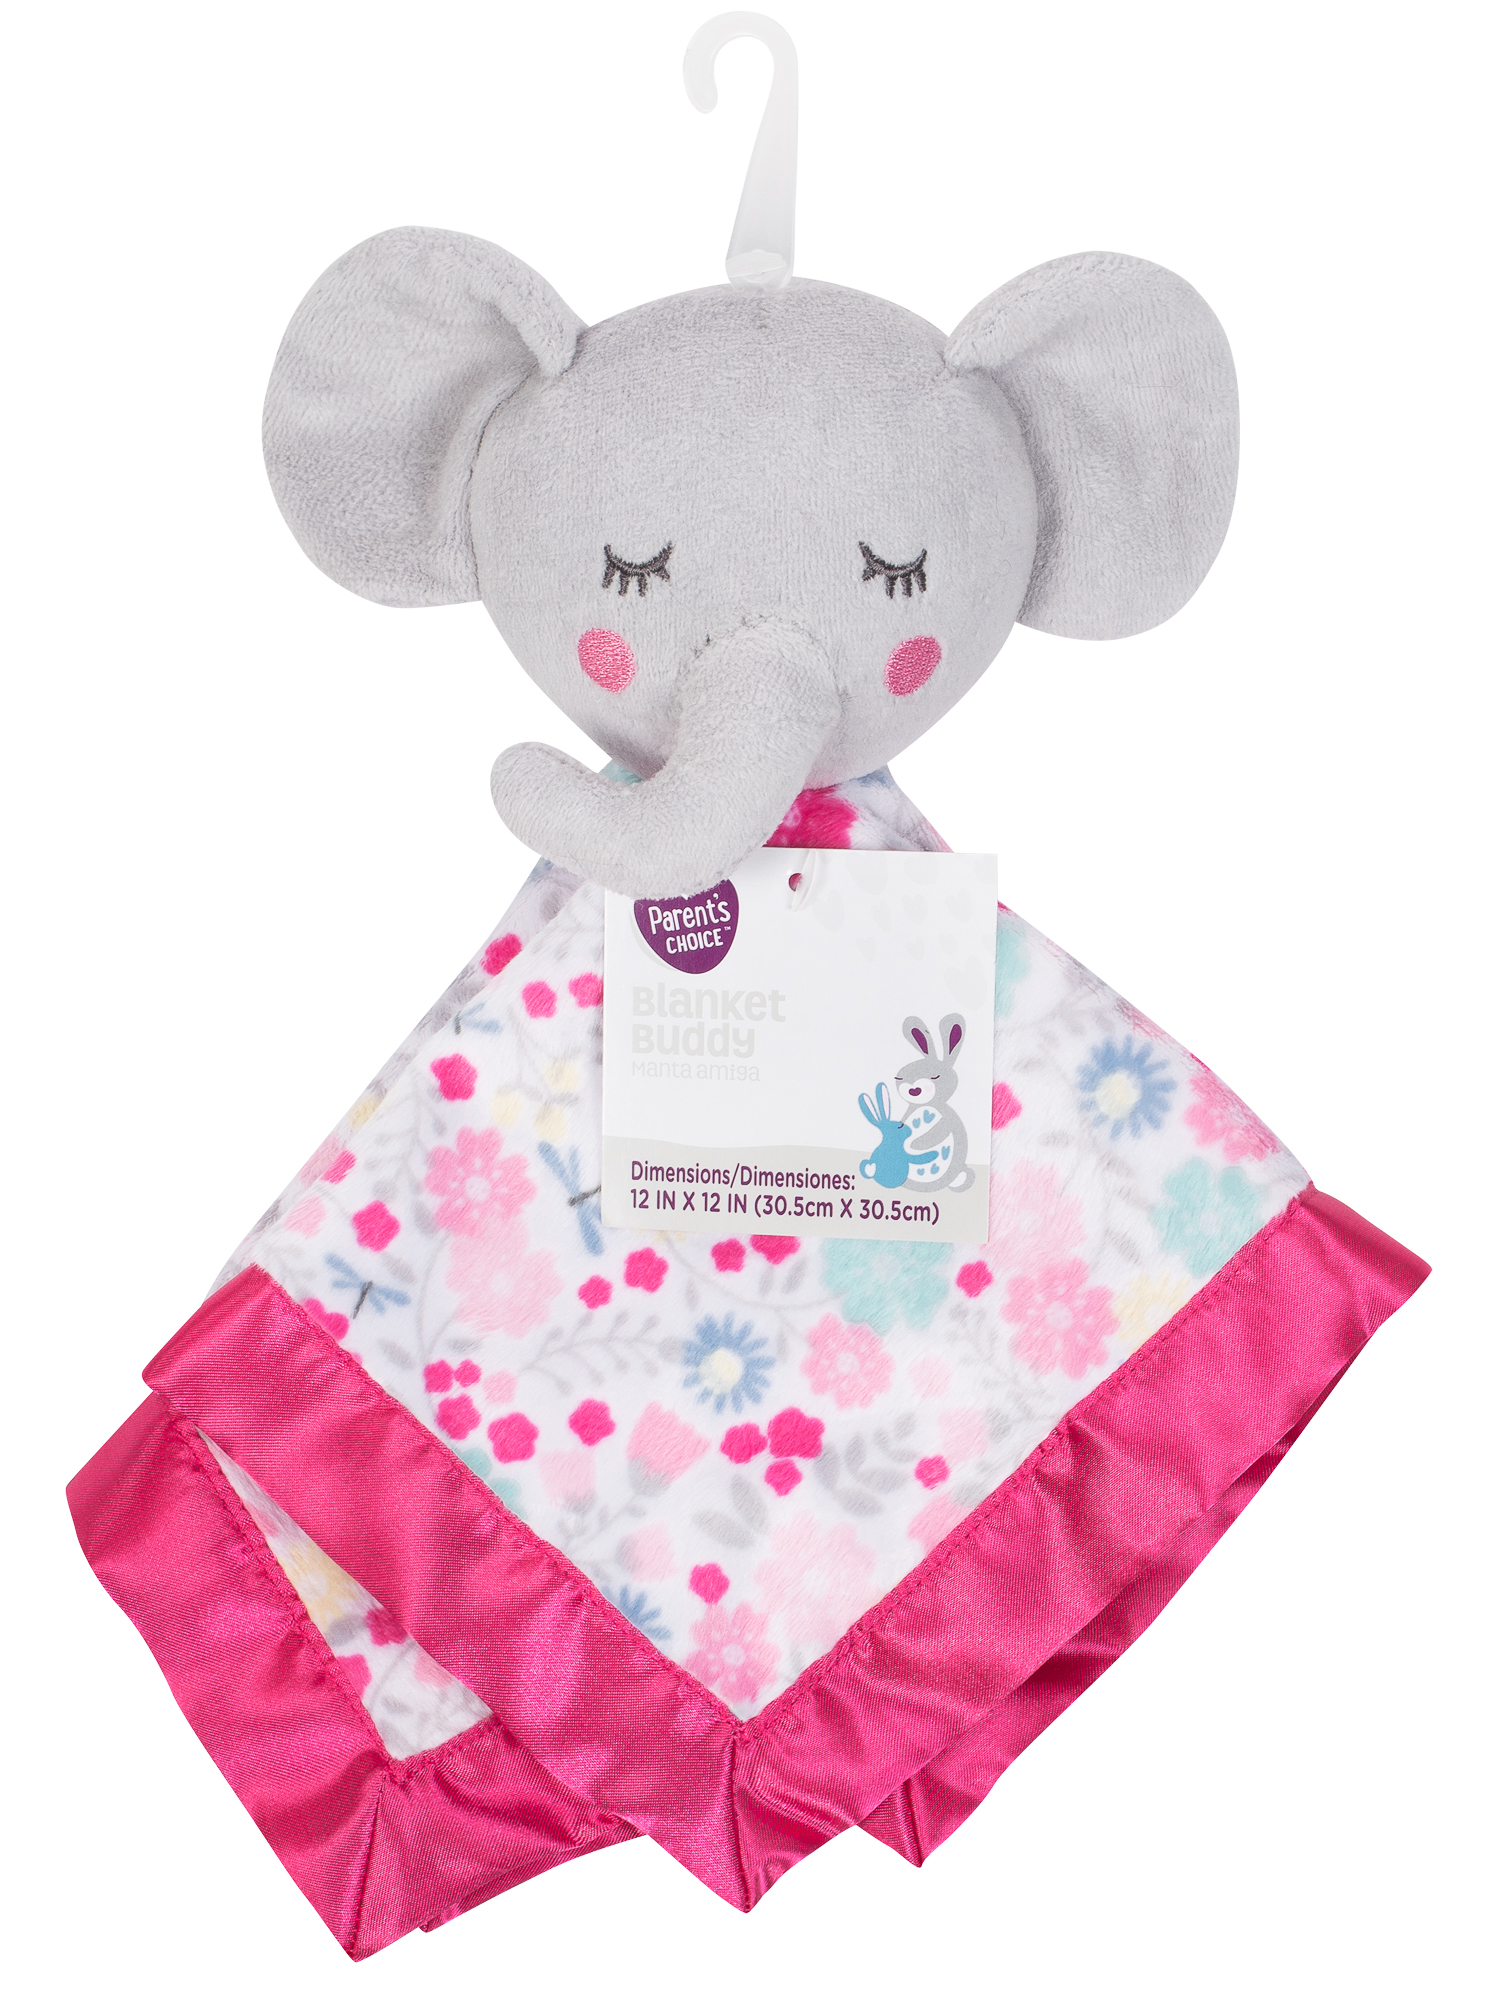 Parent's Choice Baby Security Blanket Buddy, Bella Elephant by Parent%27s Choice